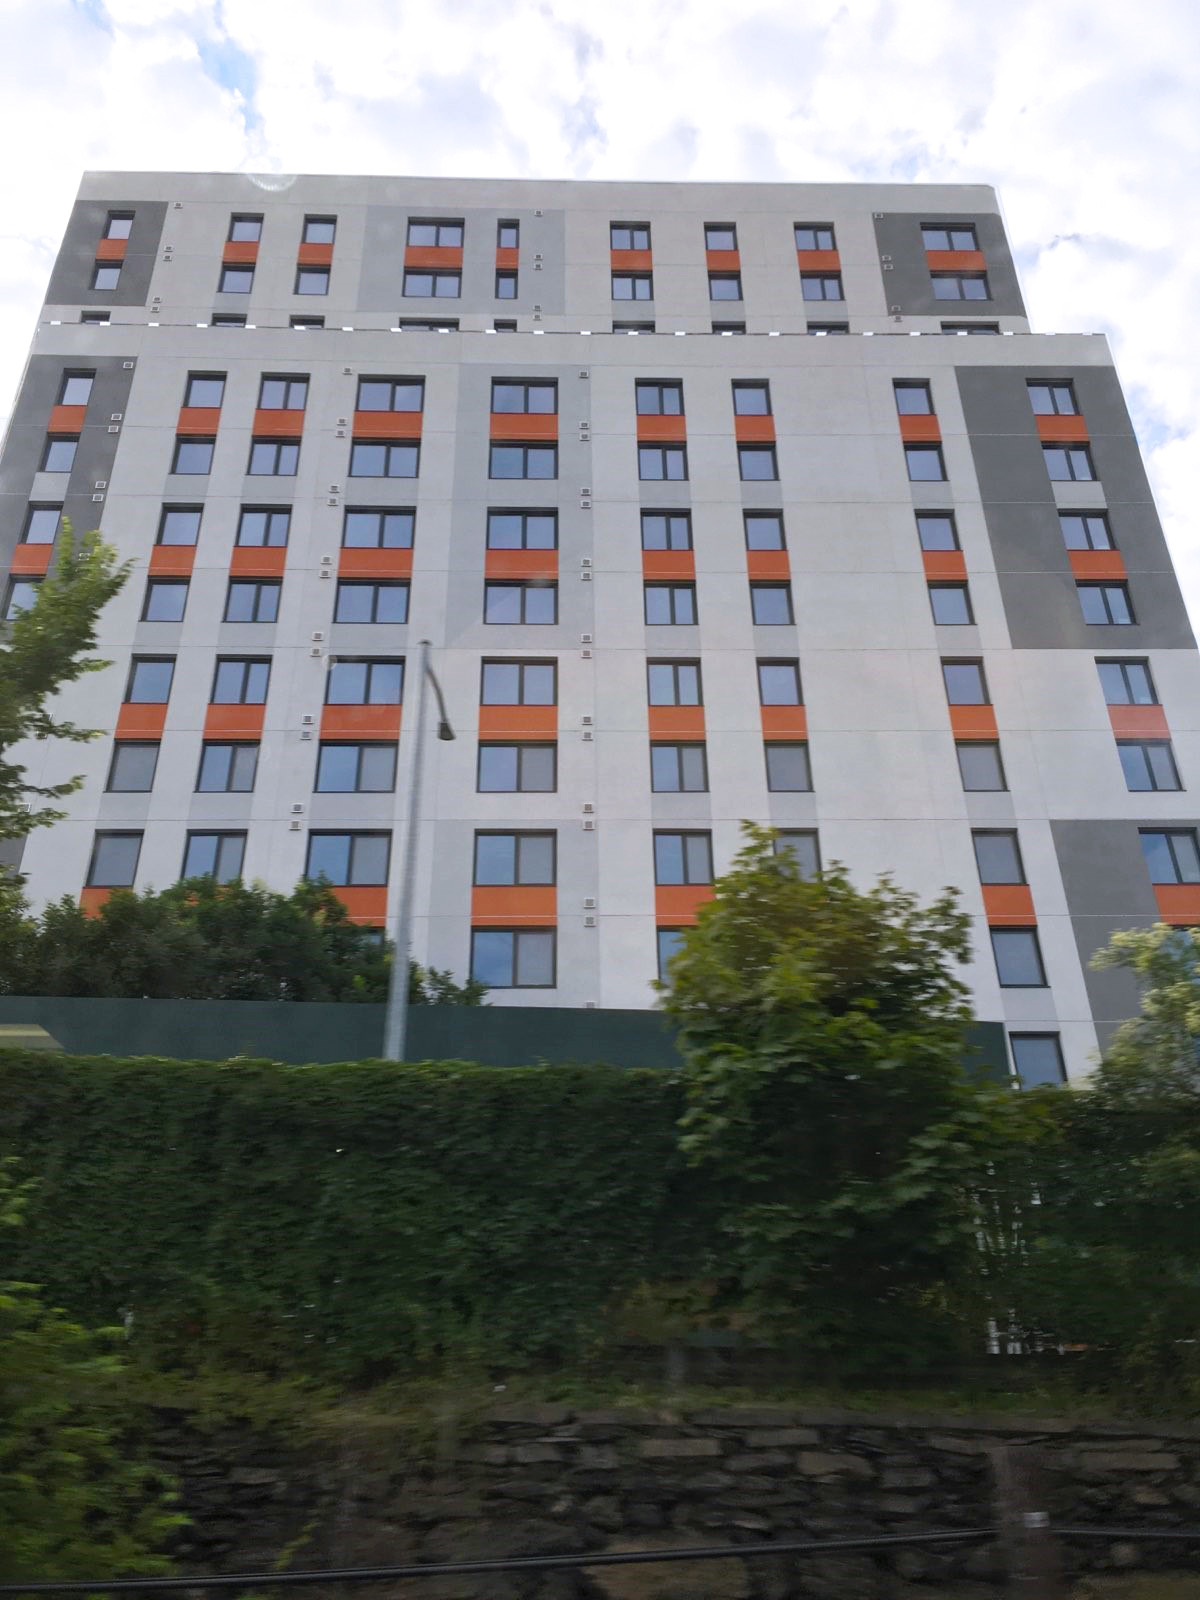 INTUS Windows have been installed at the in-progress Morris II Apartments